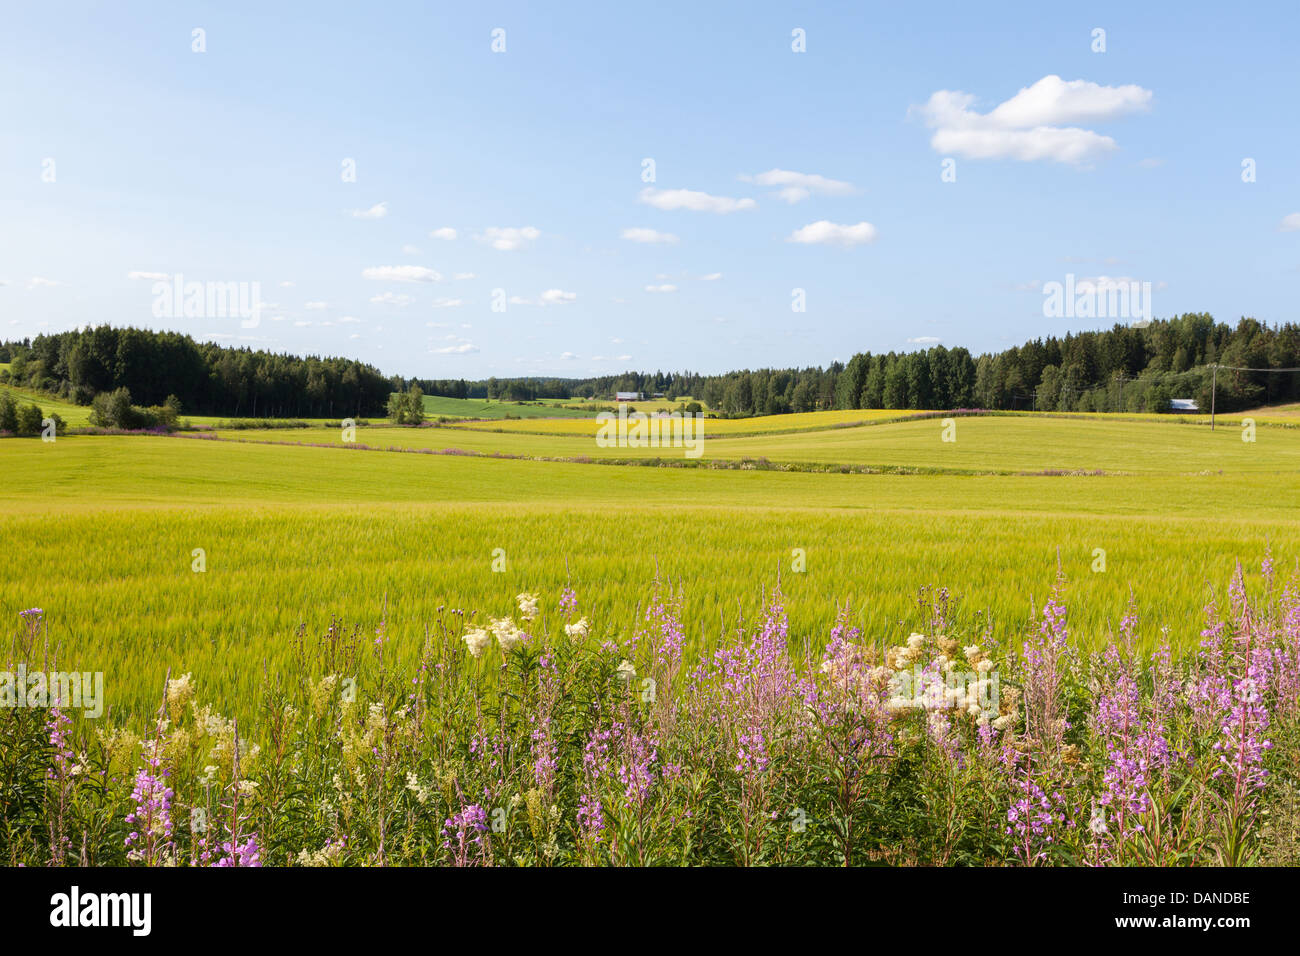 Beautiful countryside view in Finland - Stock Image